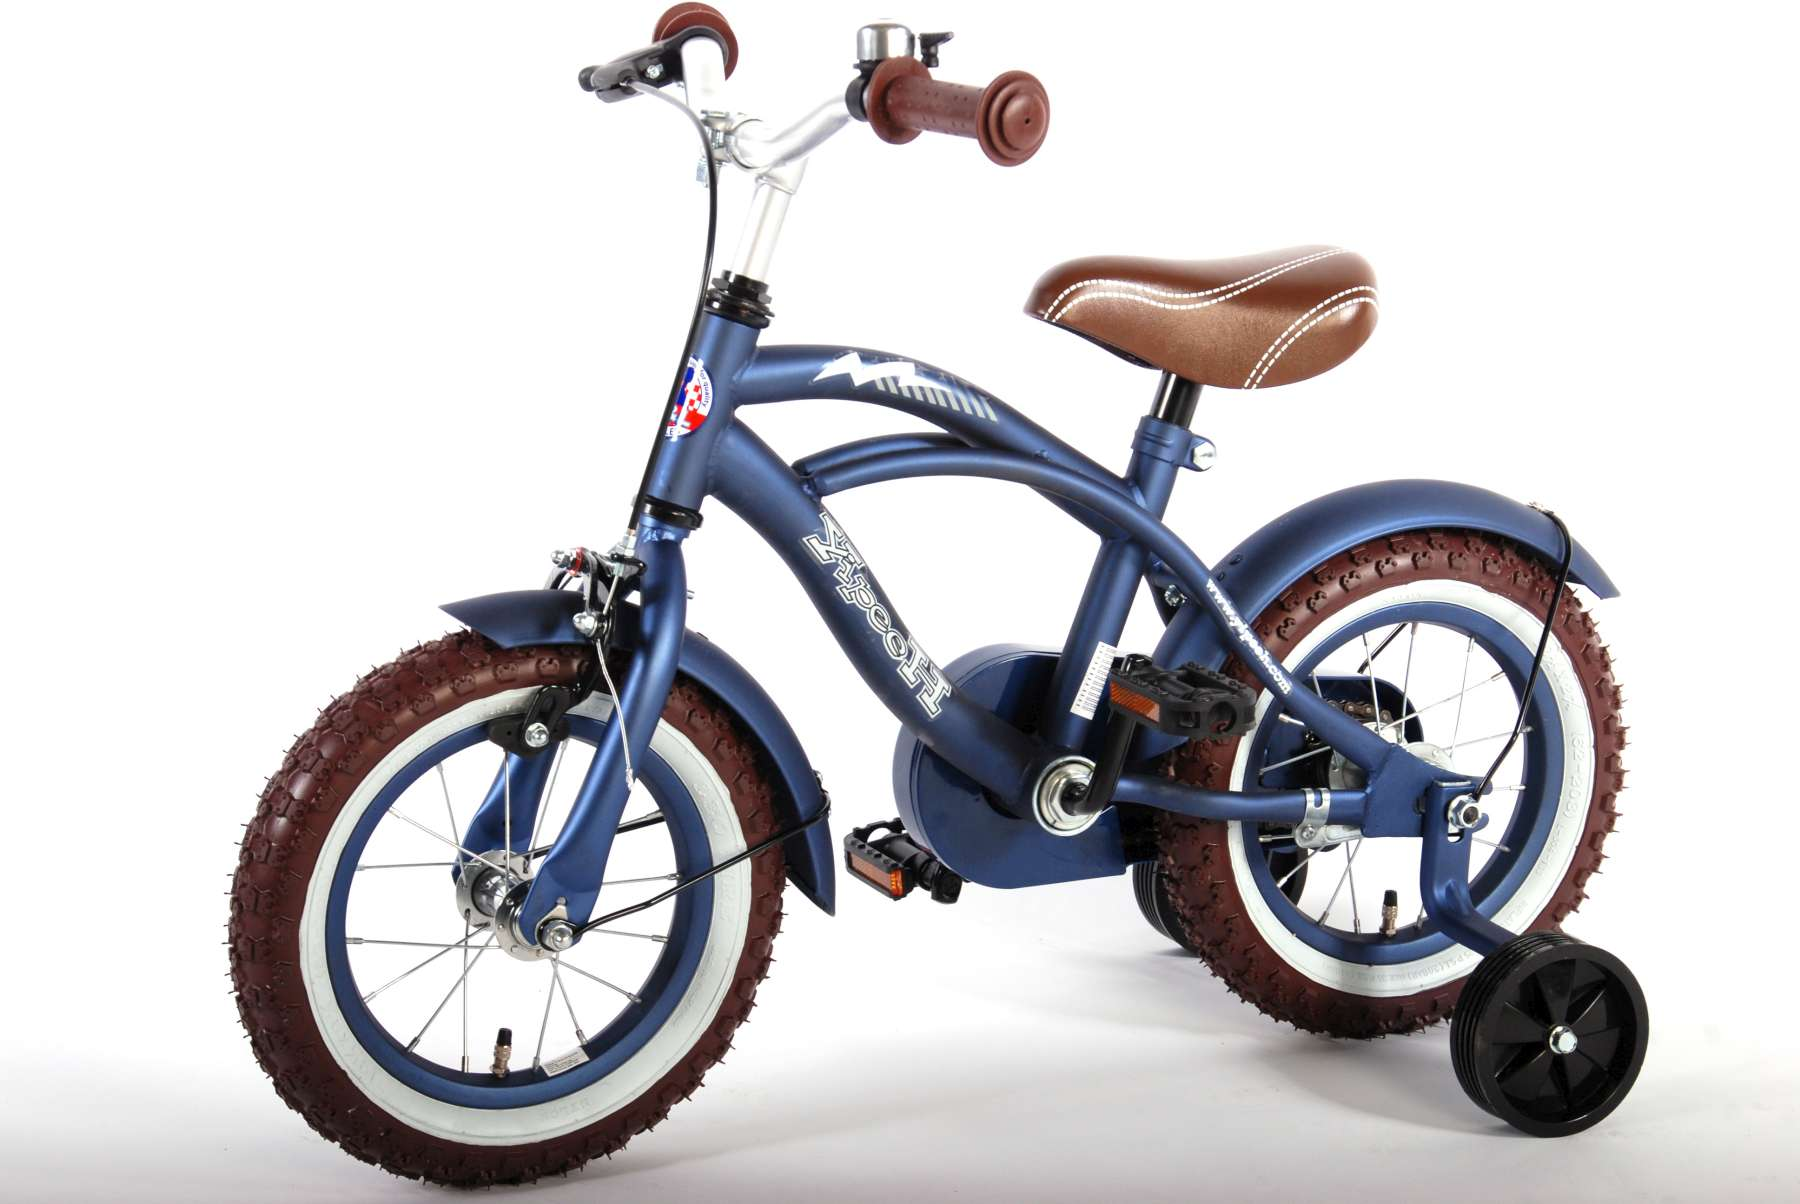 yipeeh blue cruiser kinderfahrrad 12 zoll 95 zusammengebaut. Black Bedroom Furniture Sets. Home Design Ideas